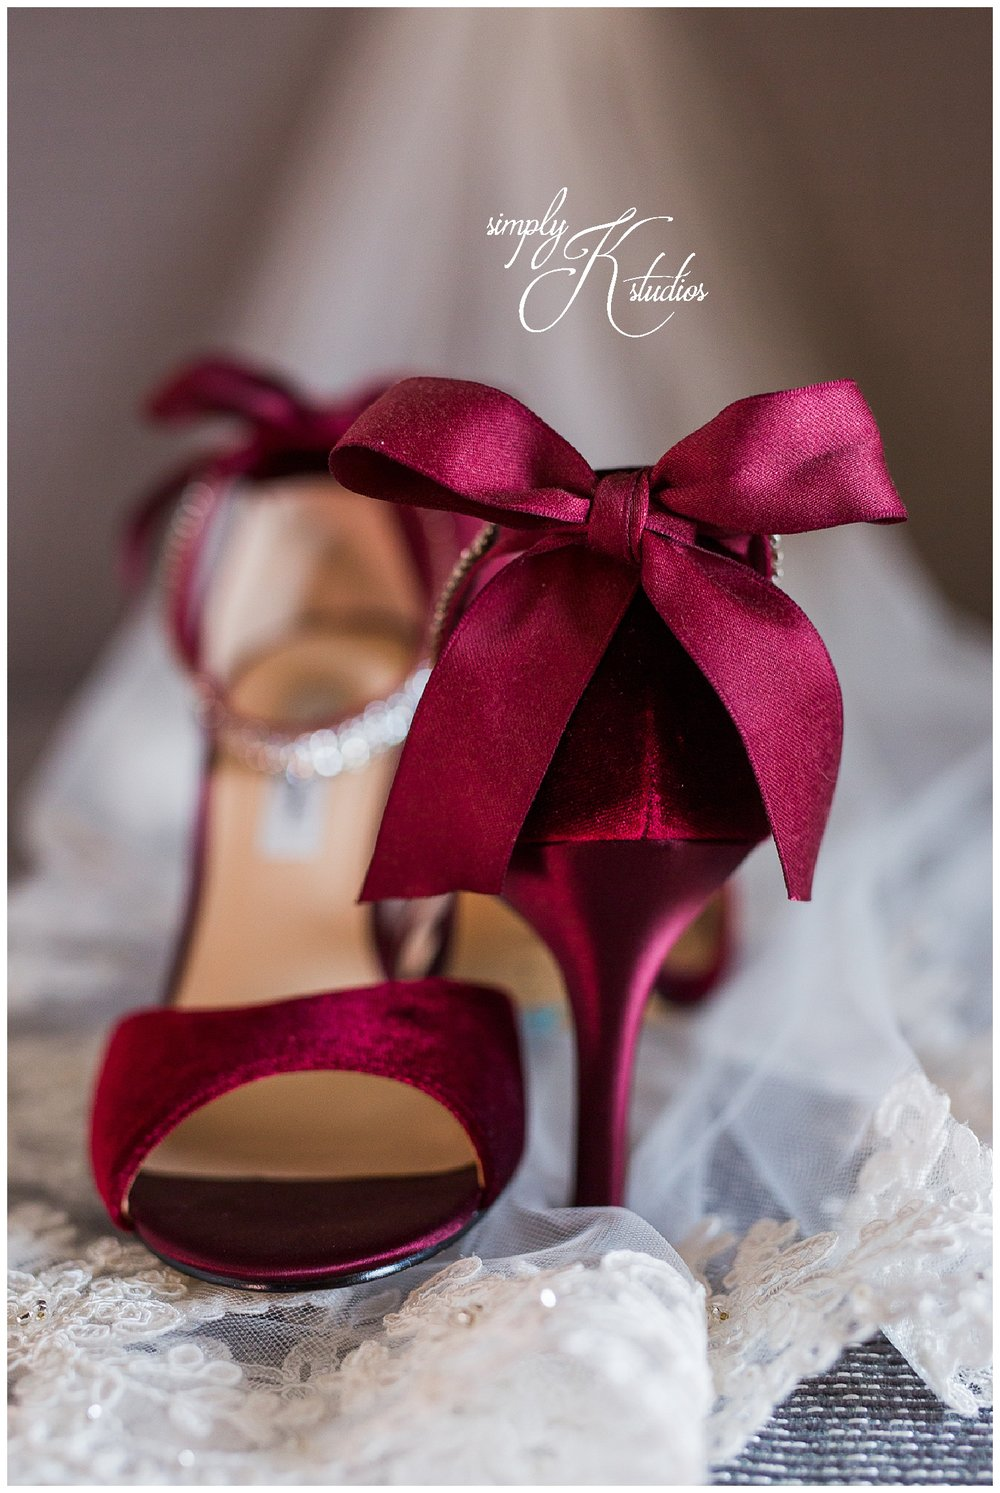 8 Red Velvet Wedding Shoes.jpg